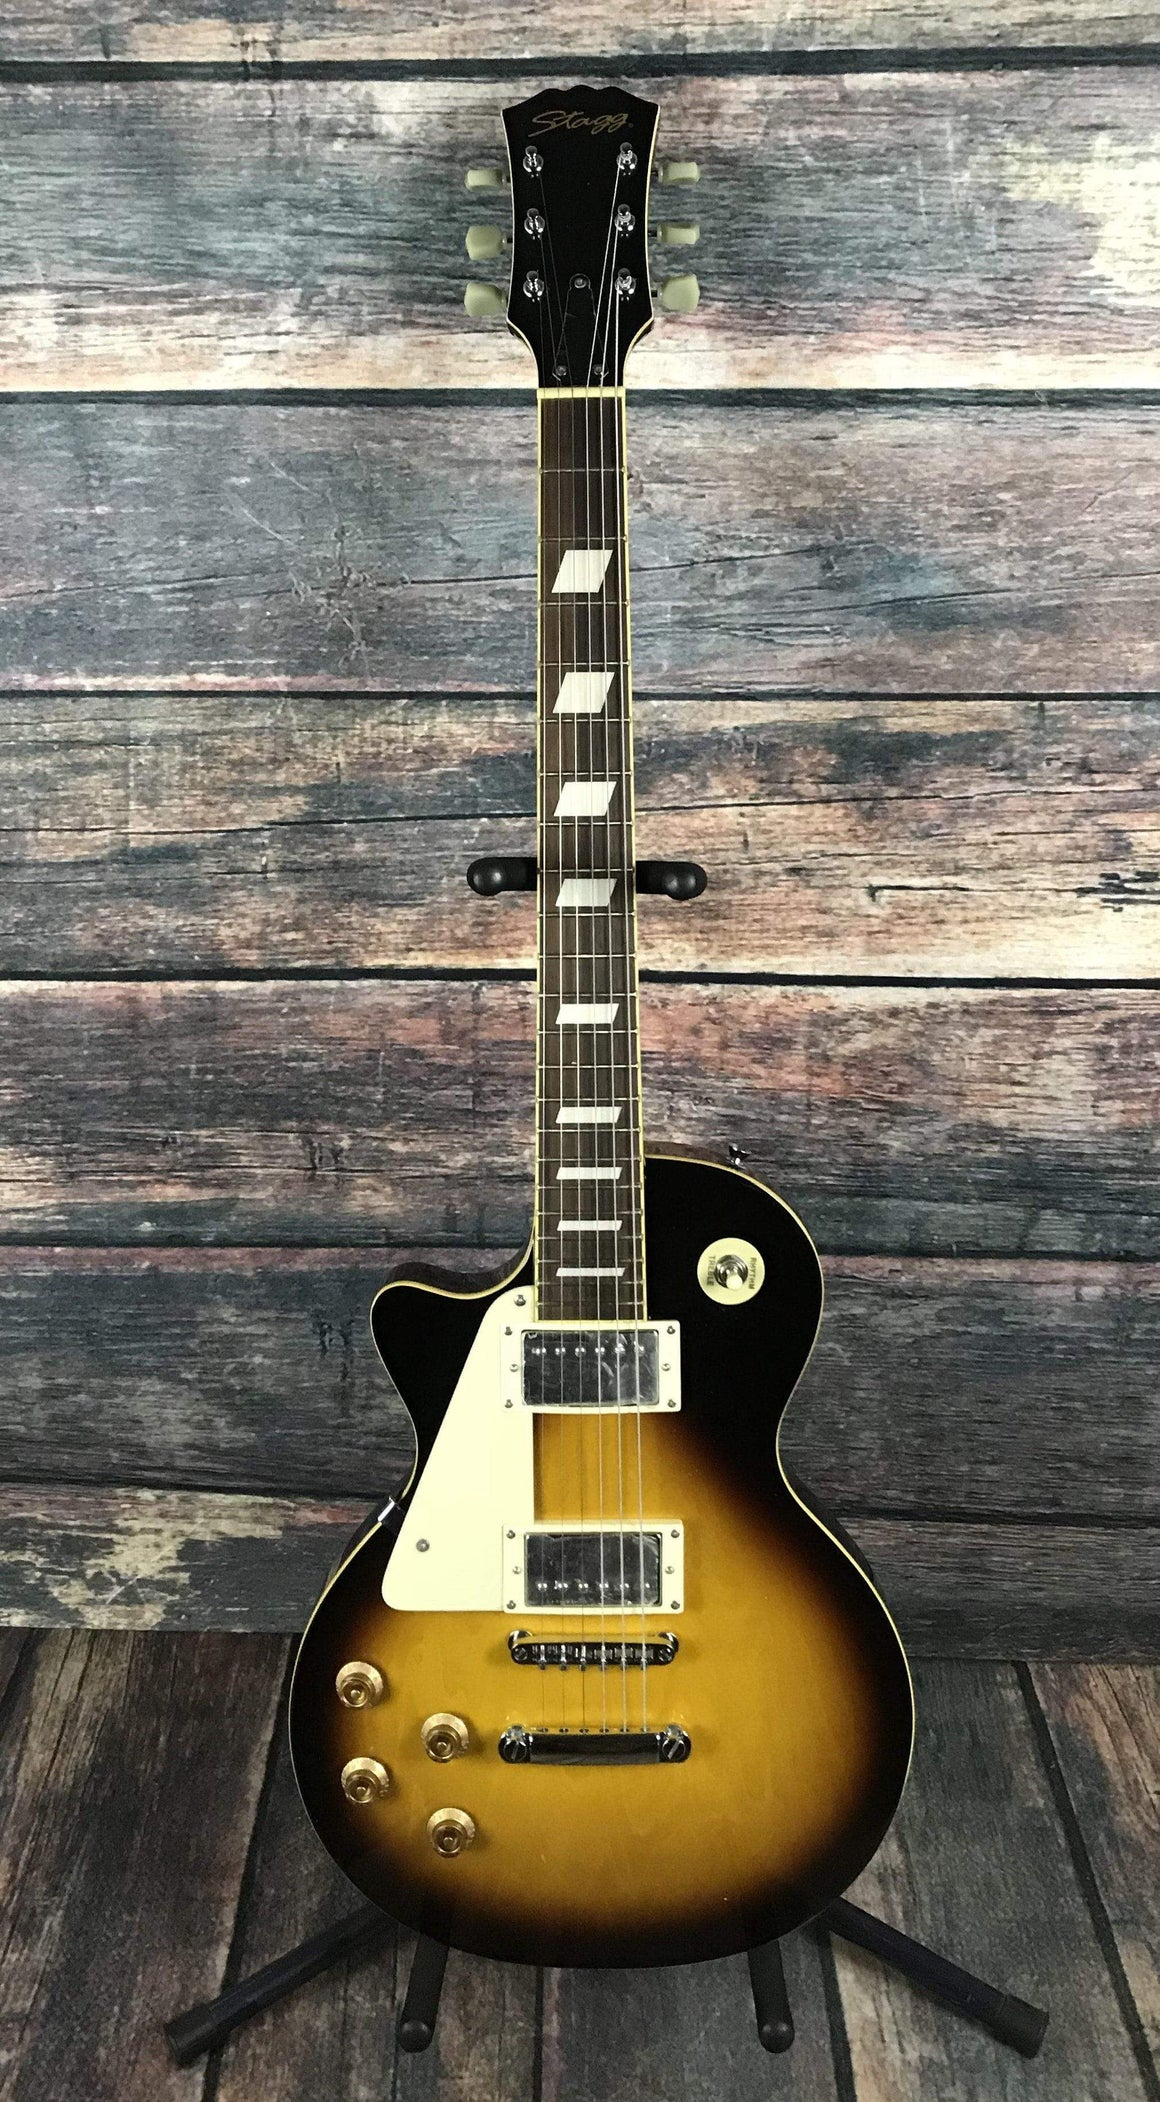 Stagg Electric Guitar Guitar Only Stagg Left Handed L320 Les Paul Style Electric Guitar- Sunburst